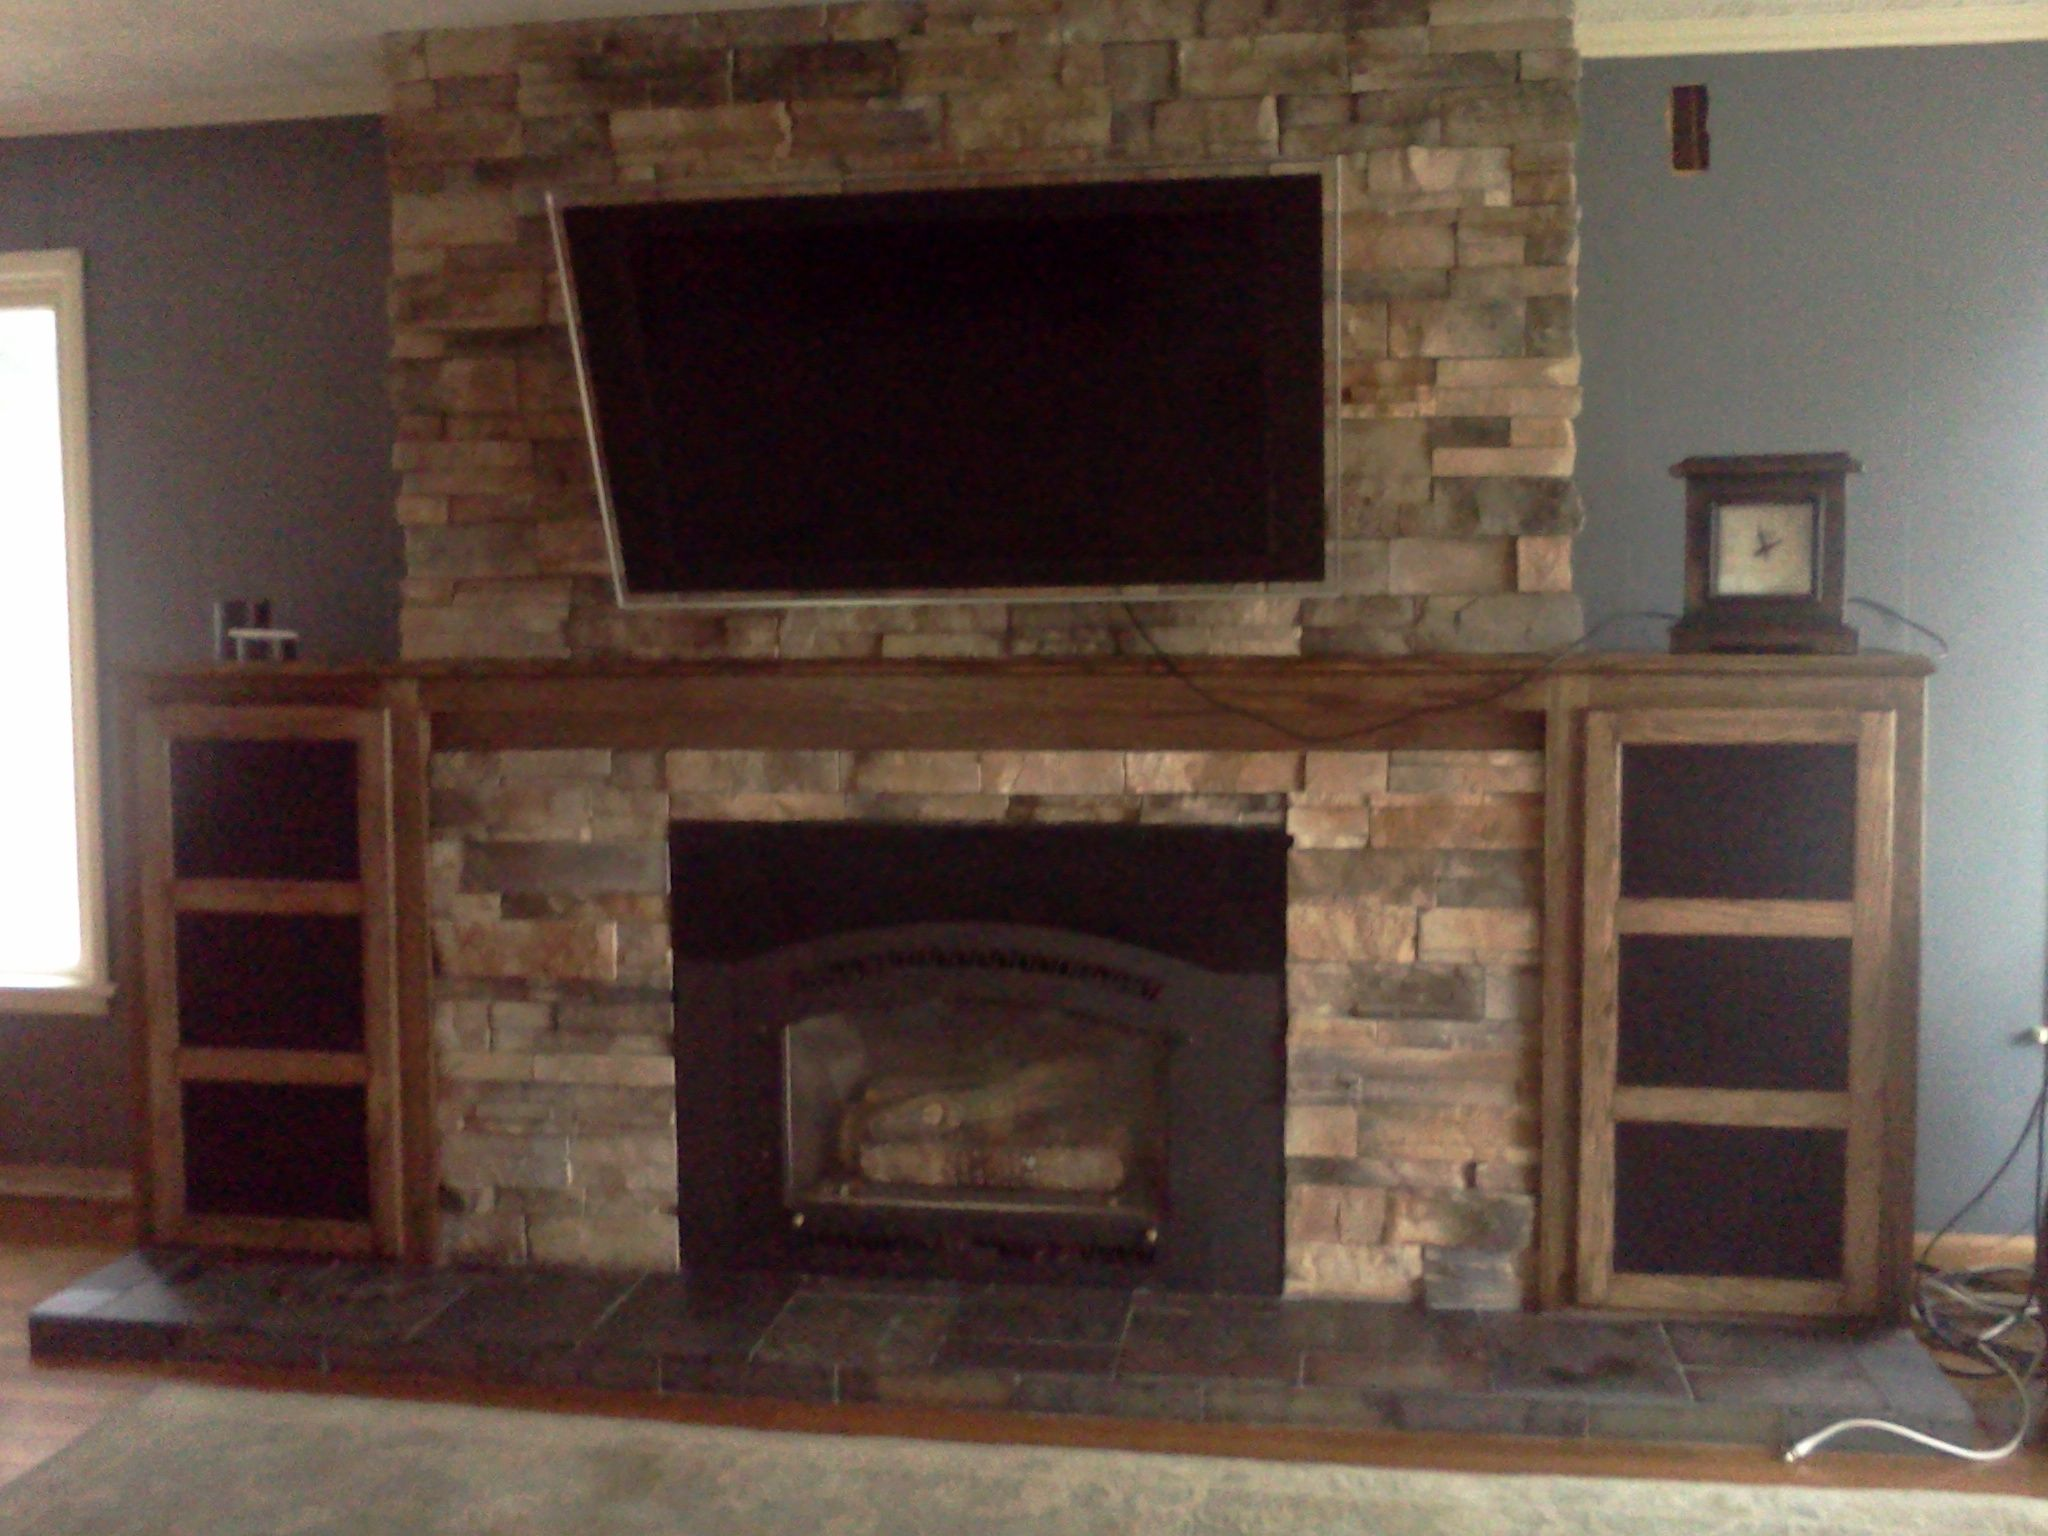 Basement Fireplace Ideas Basement Fireplace Idea Project Remodel Round 1